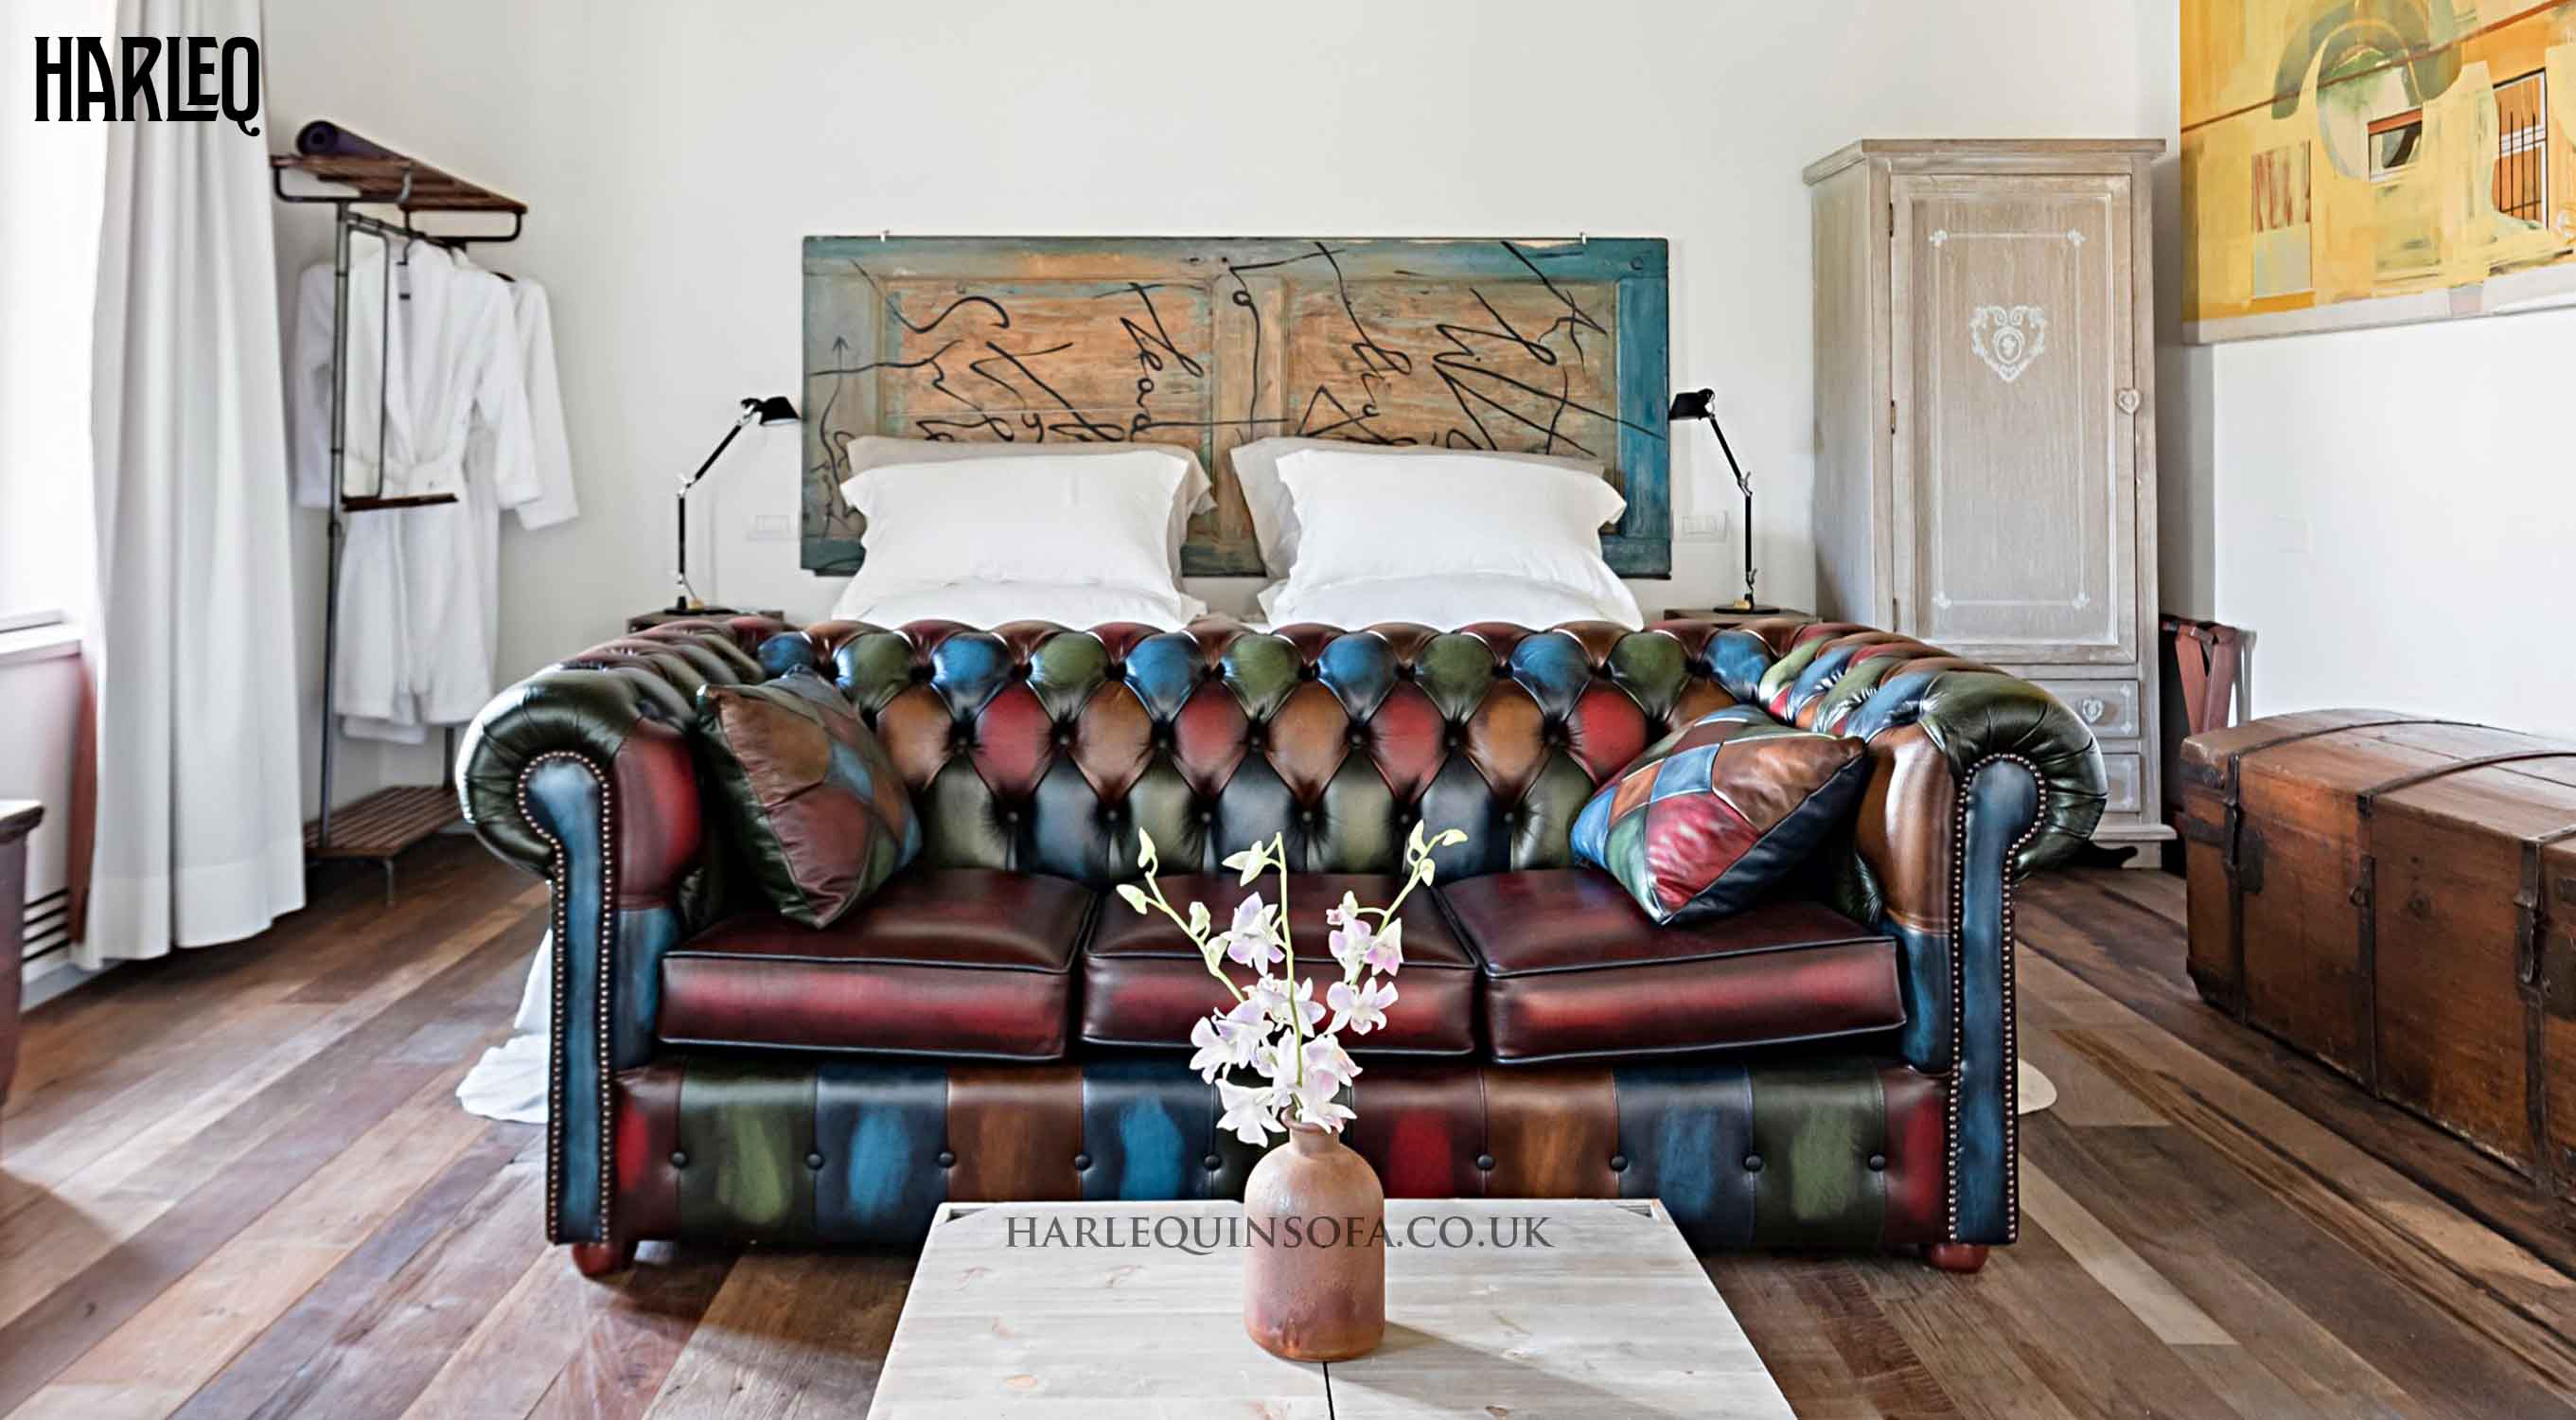 multicoloured-patchwork-leather-chesterfield